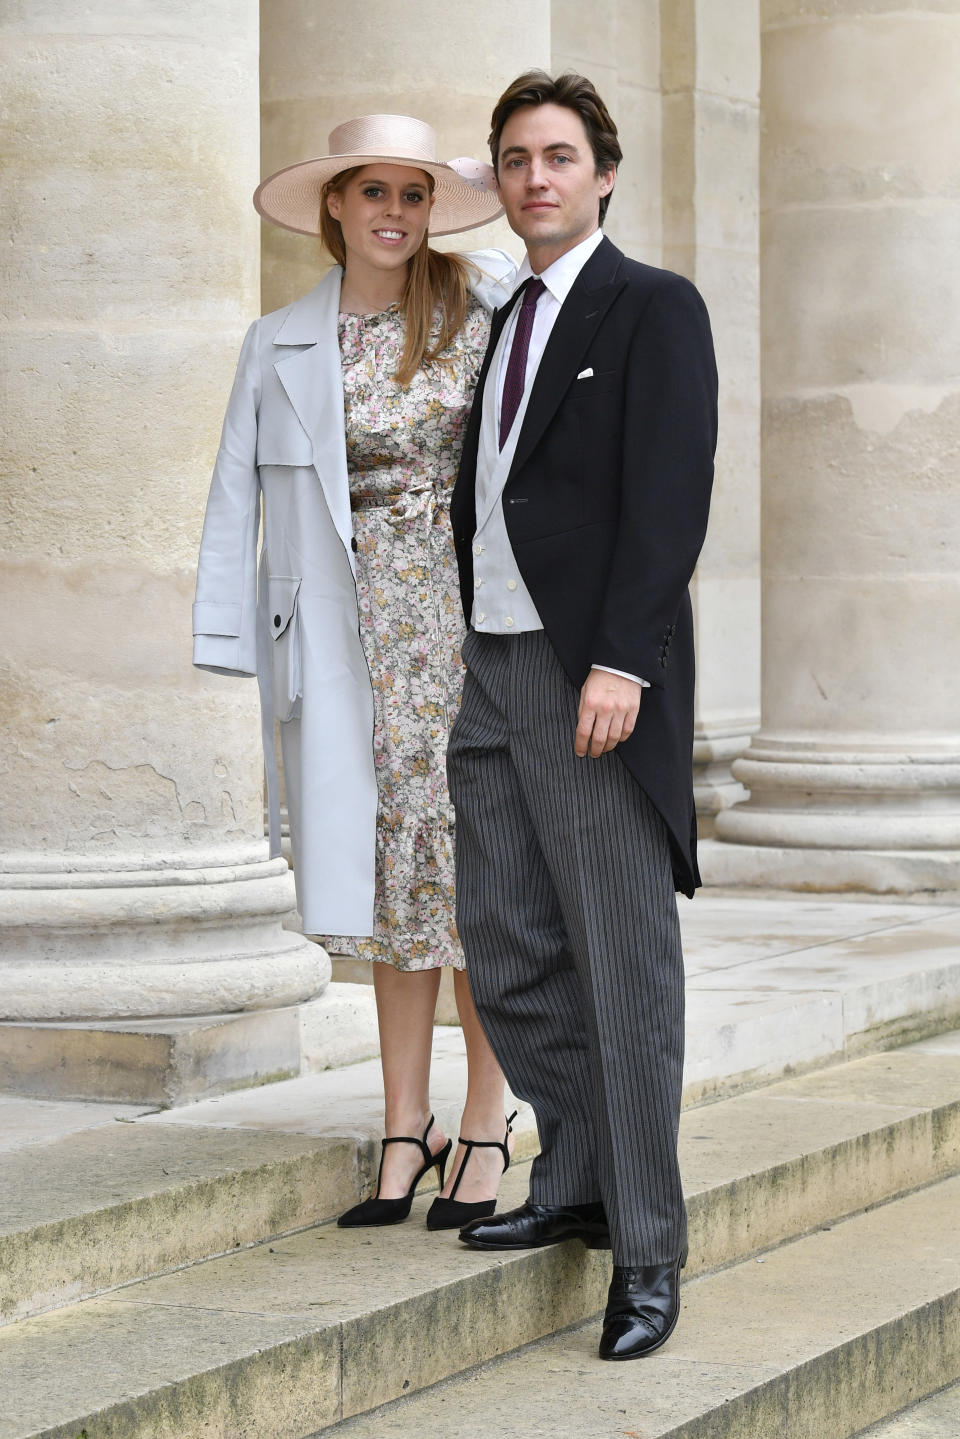 Princess Beatrice d'York and her fiance Edoardo Mapelli Mozzi attend the Wedding of Prince Jean-Christophe Napoleon and Olympia Von Arco-Zinneberg at Les Invalides on October 19, 2019 in Paris, France.